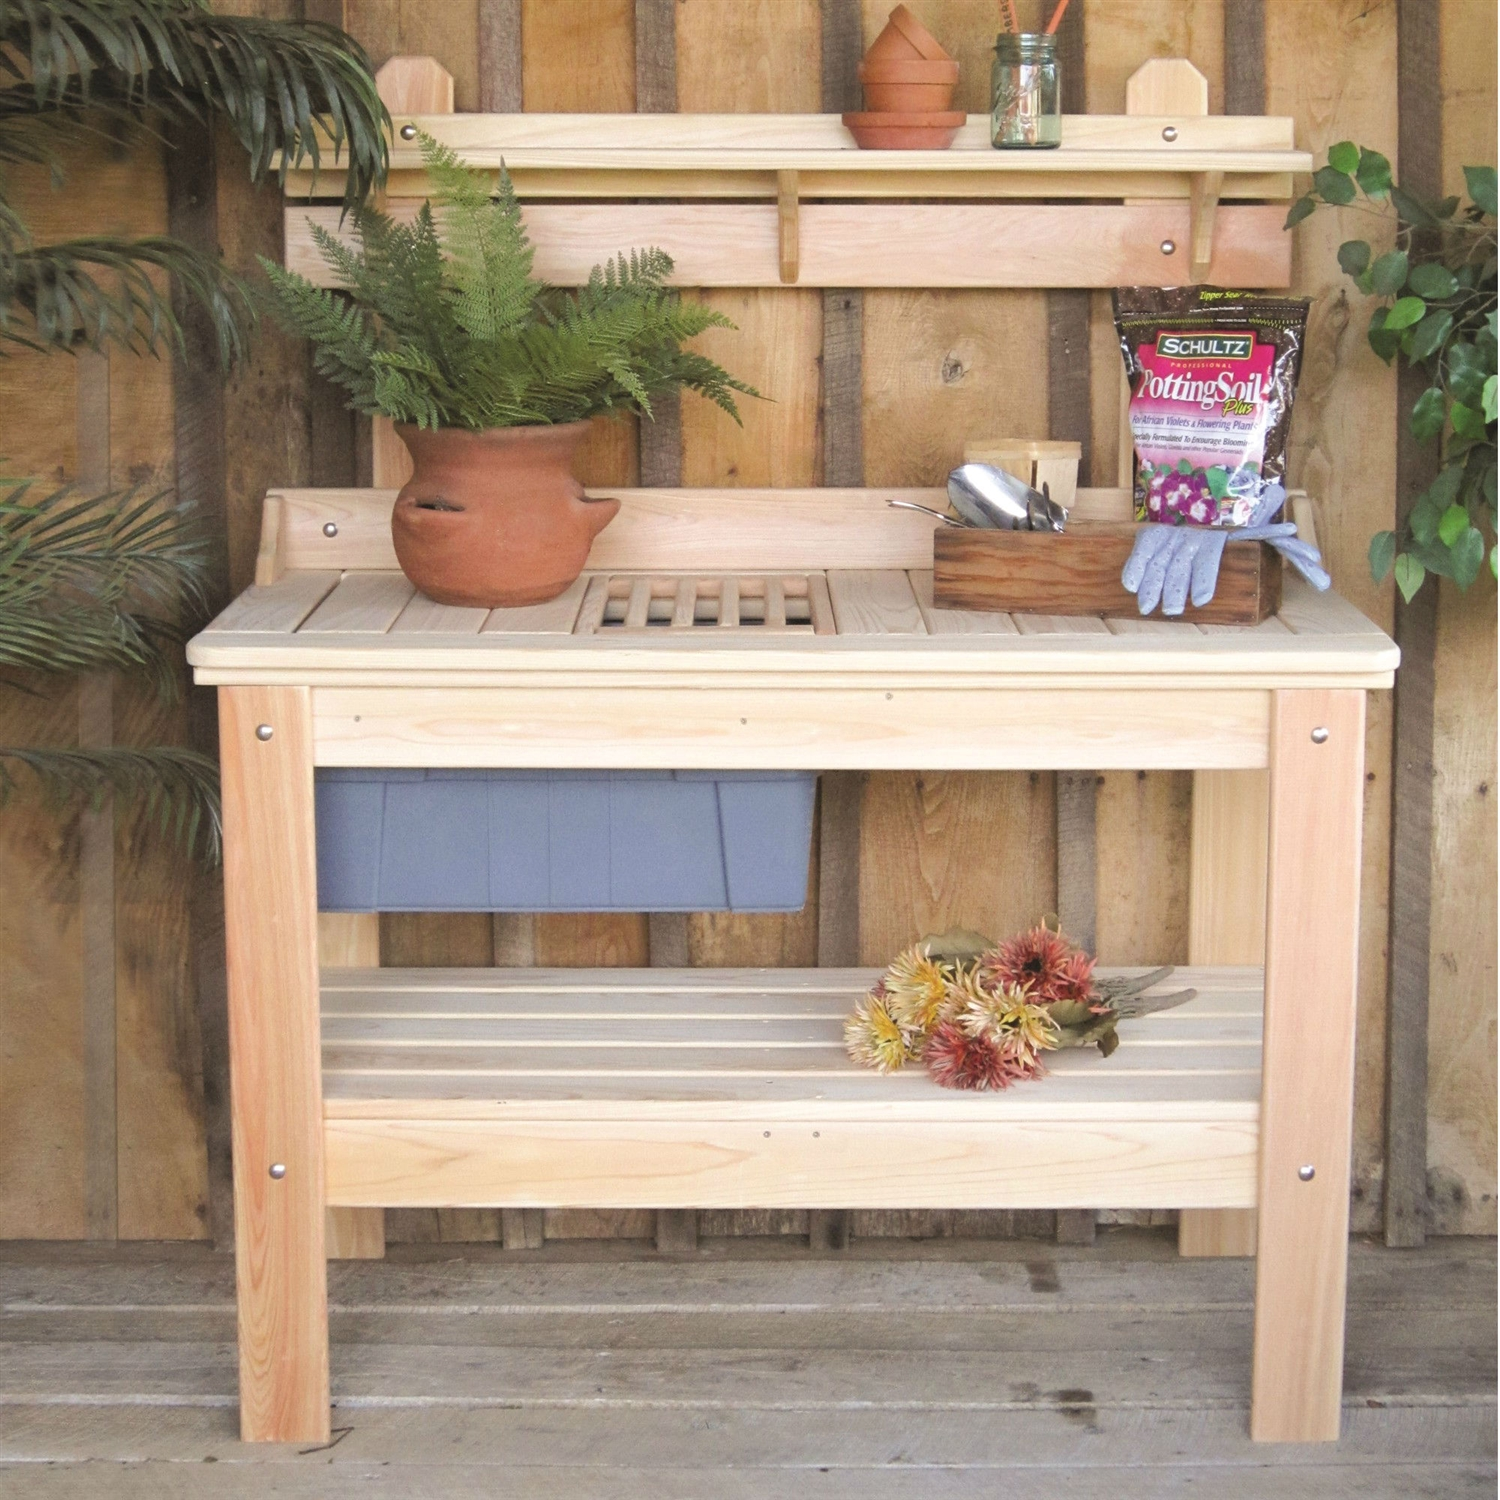 station stand youtube bench potting planting table wood work garden watch outdoor